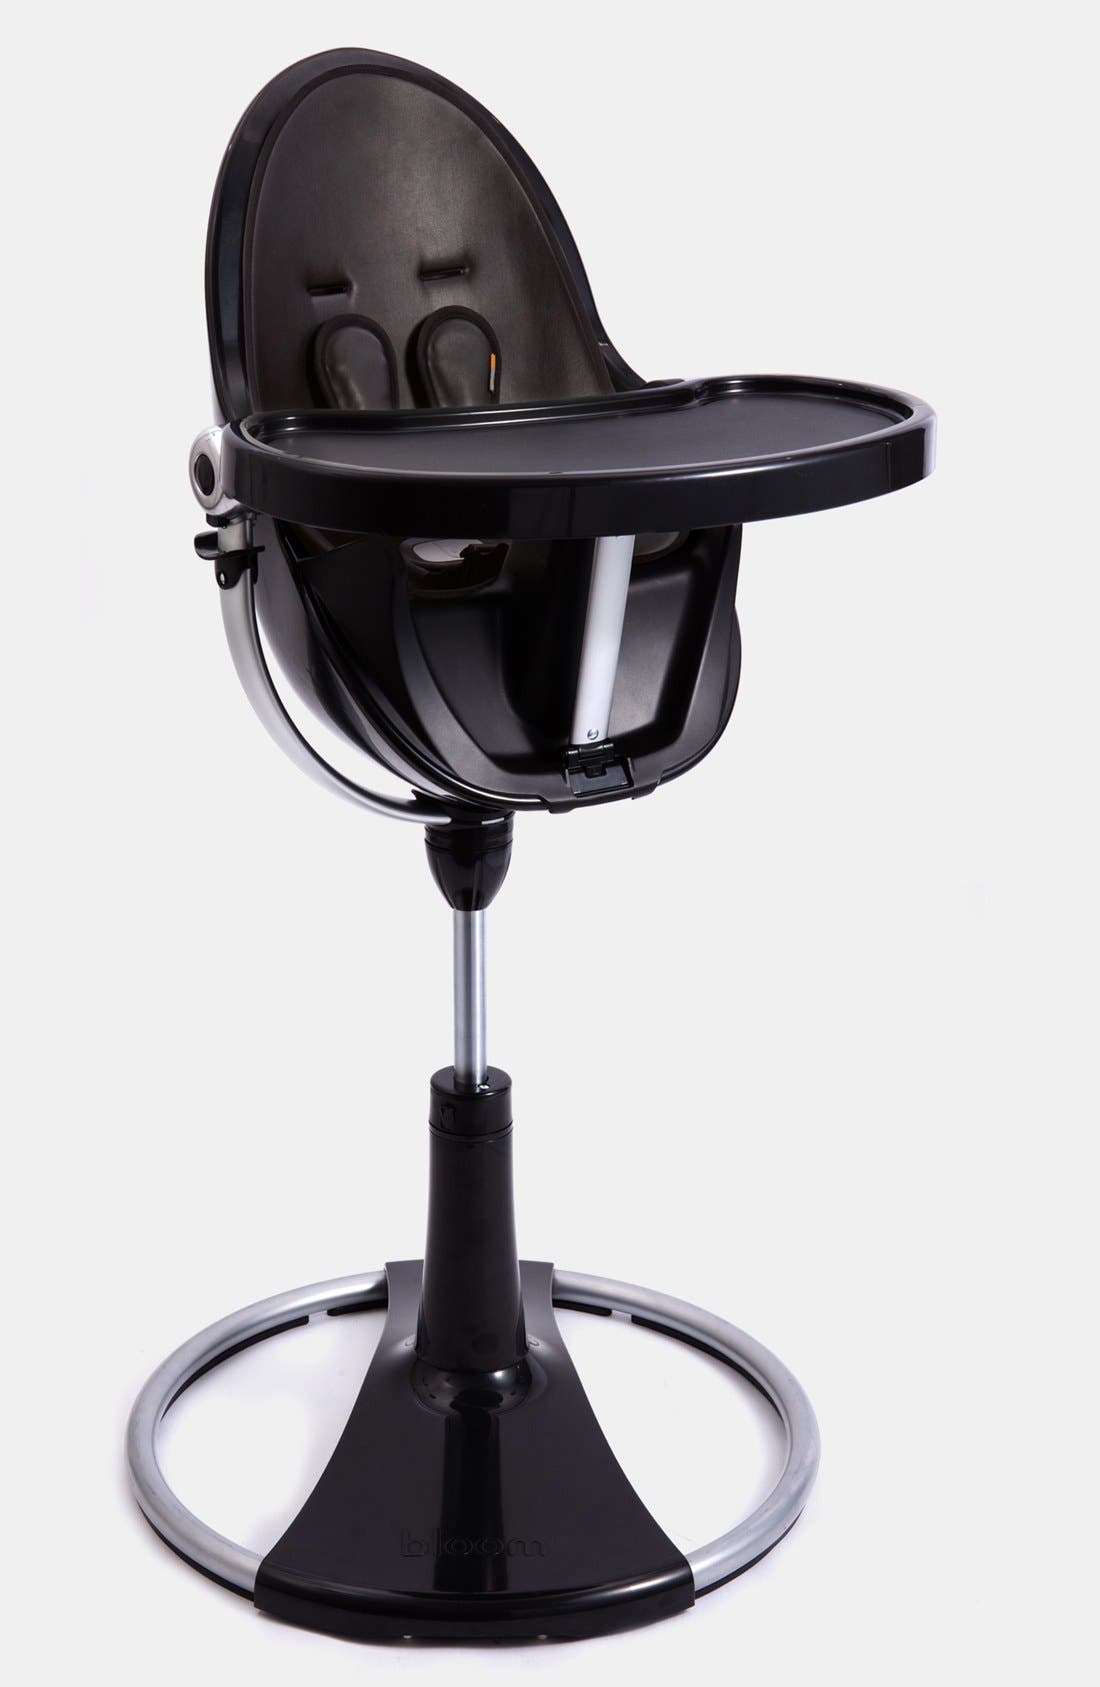 bloom 'Fresco™ Chrome' Contemporary Highchair